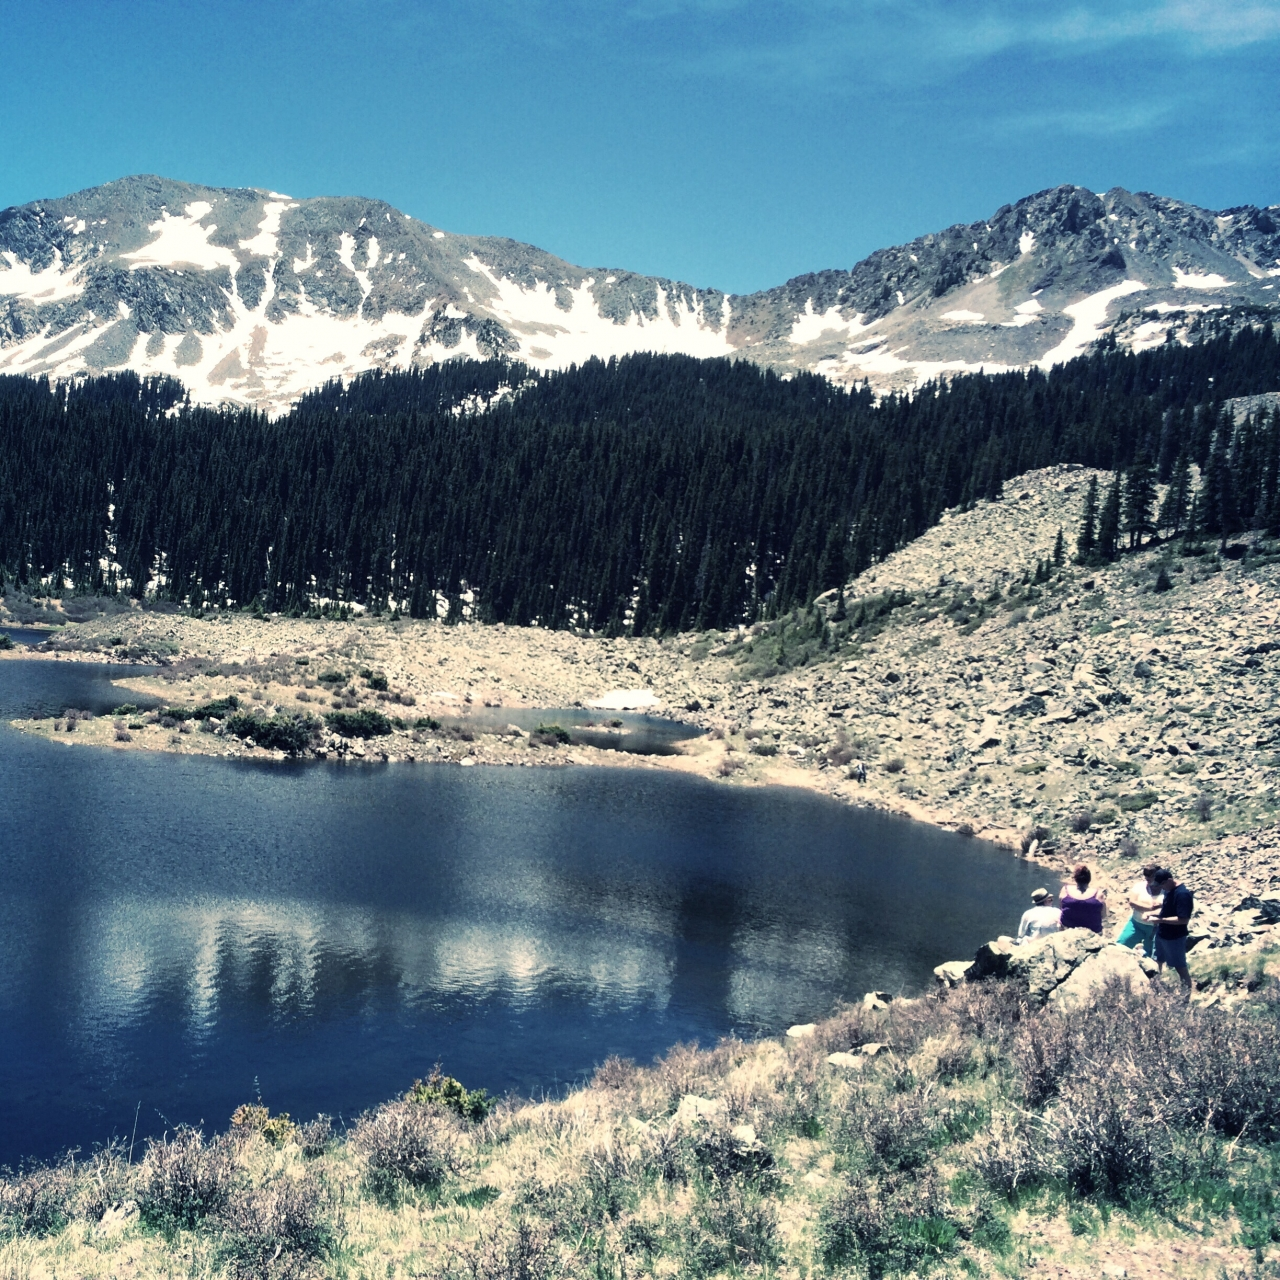 Hiked to Williams Lake today, elev 11,040'   Above Taos, <br /> NM #21DaysWorld #SantaFe...